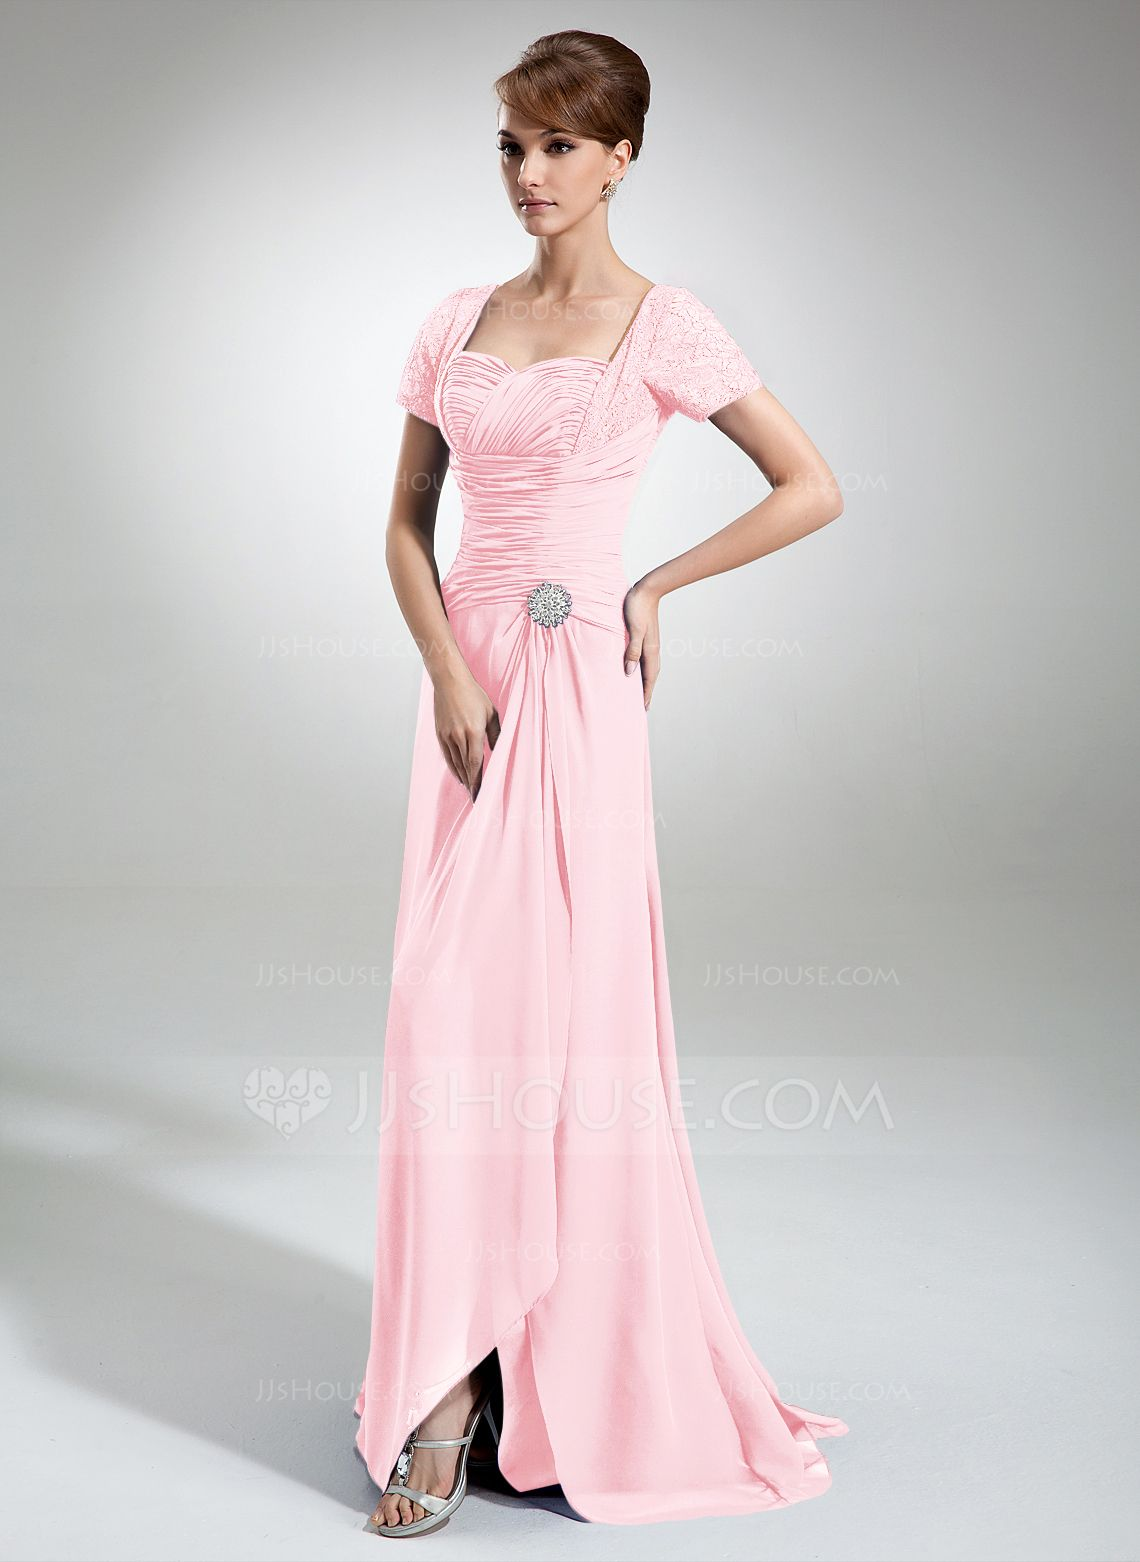 House of brides wedding dresses  JJsHouse as the global leading online retailer provides a large